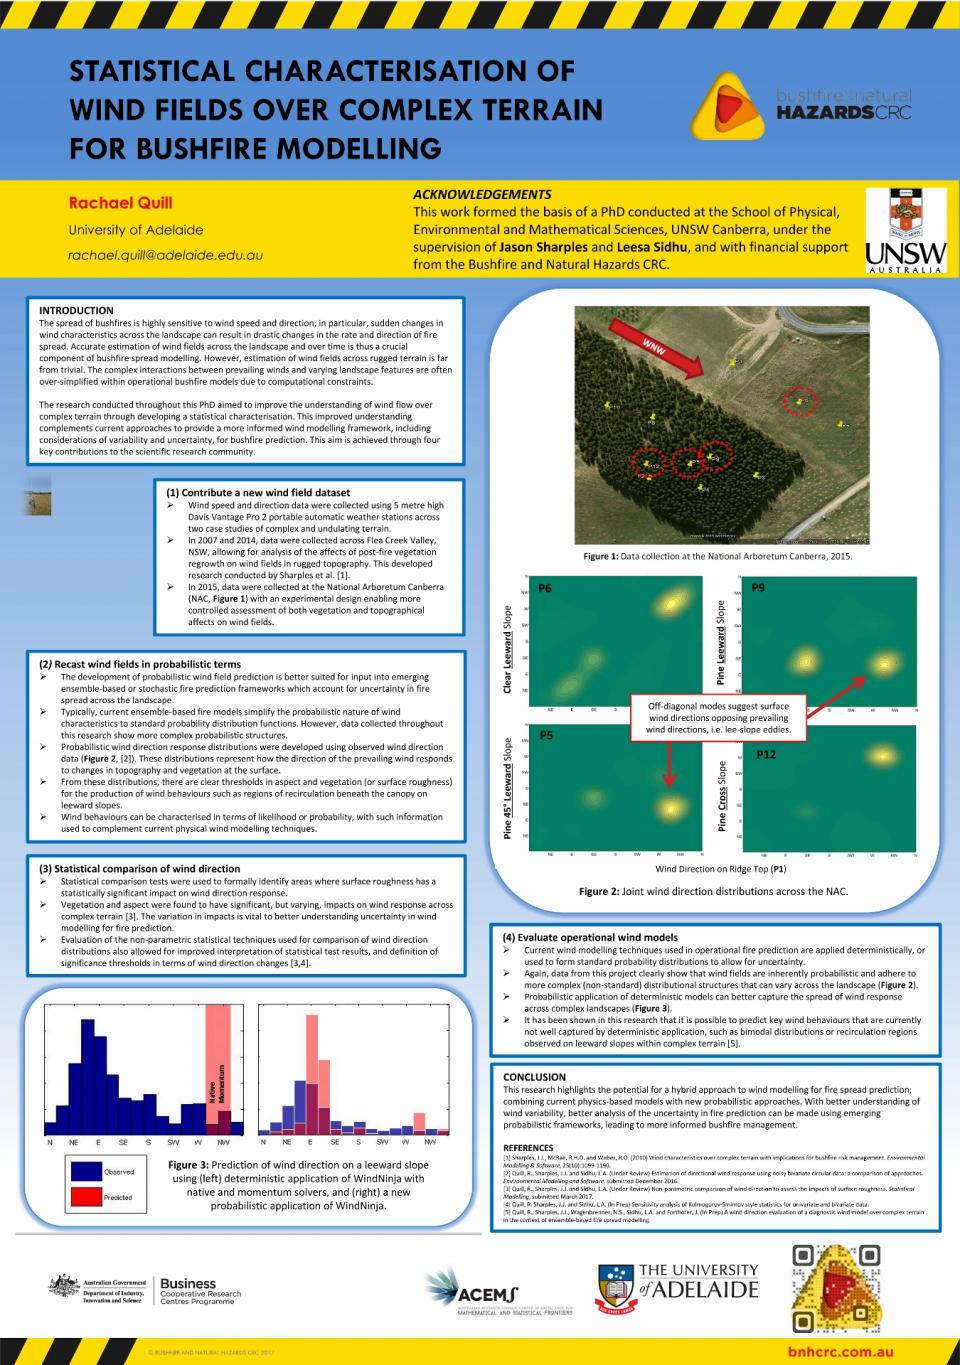 Statistical characterisation of wind fields over complex terrain for bushfire modelling